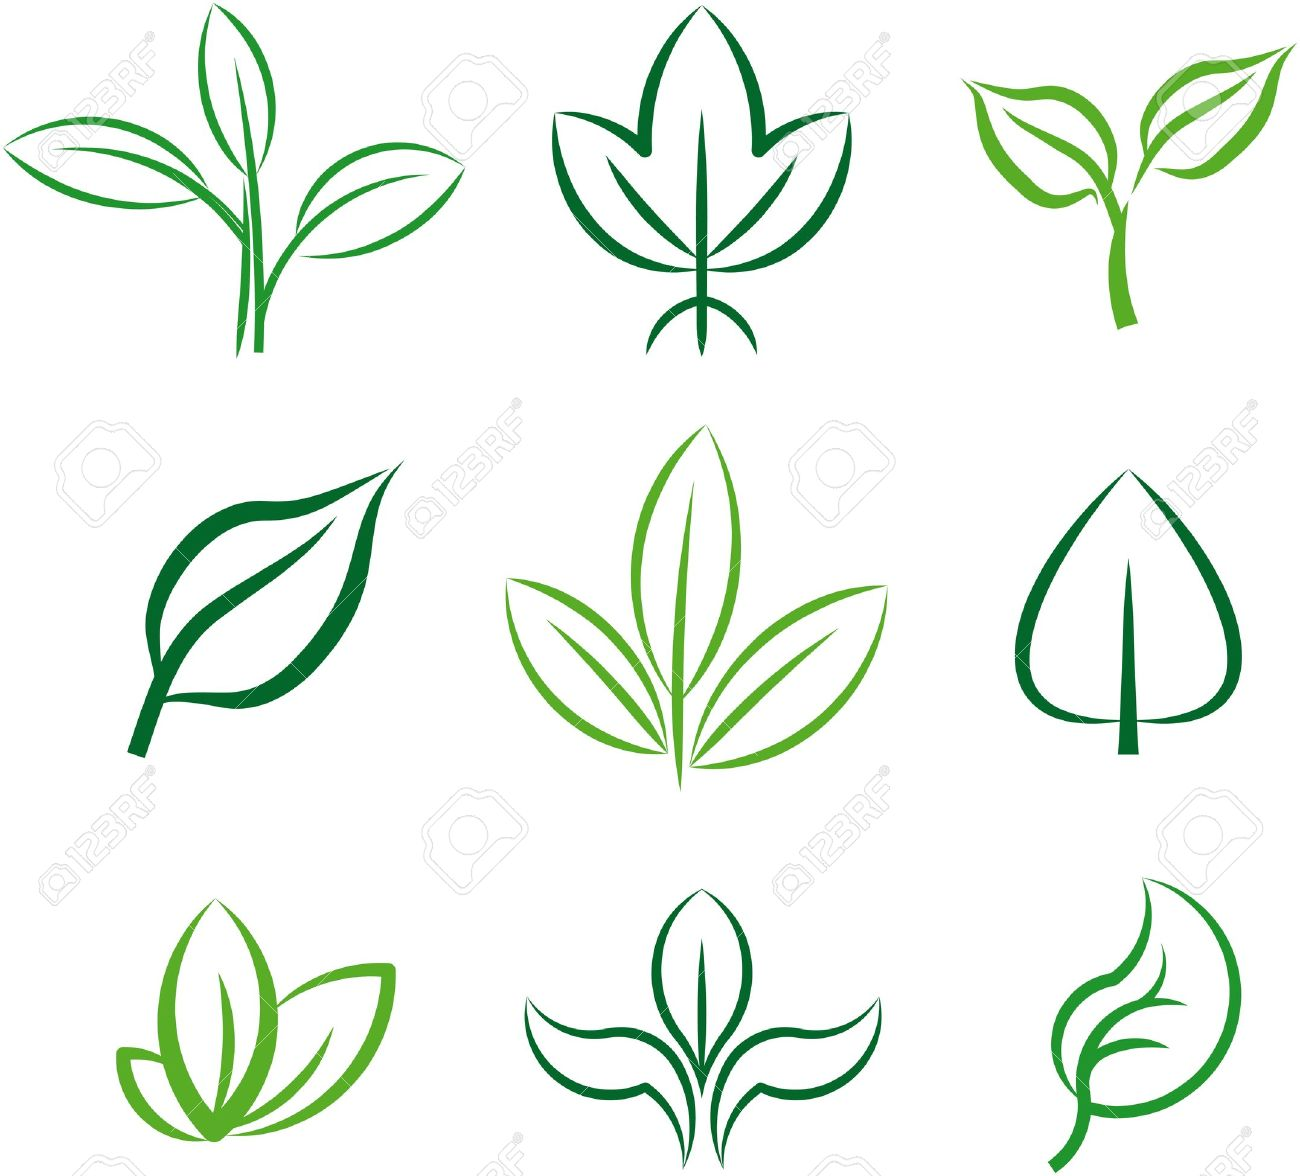 Green Plants And Leaves. Vector Illustration Royalty Free Cliparts.